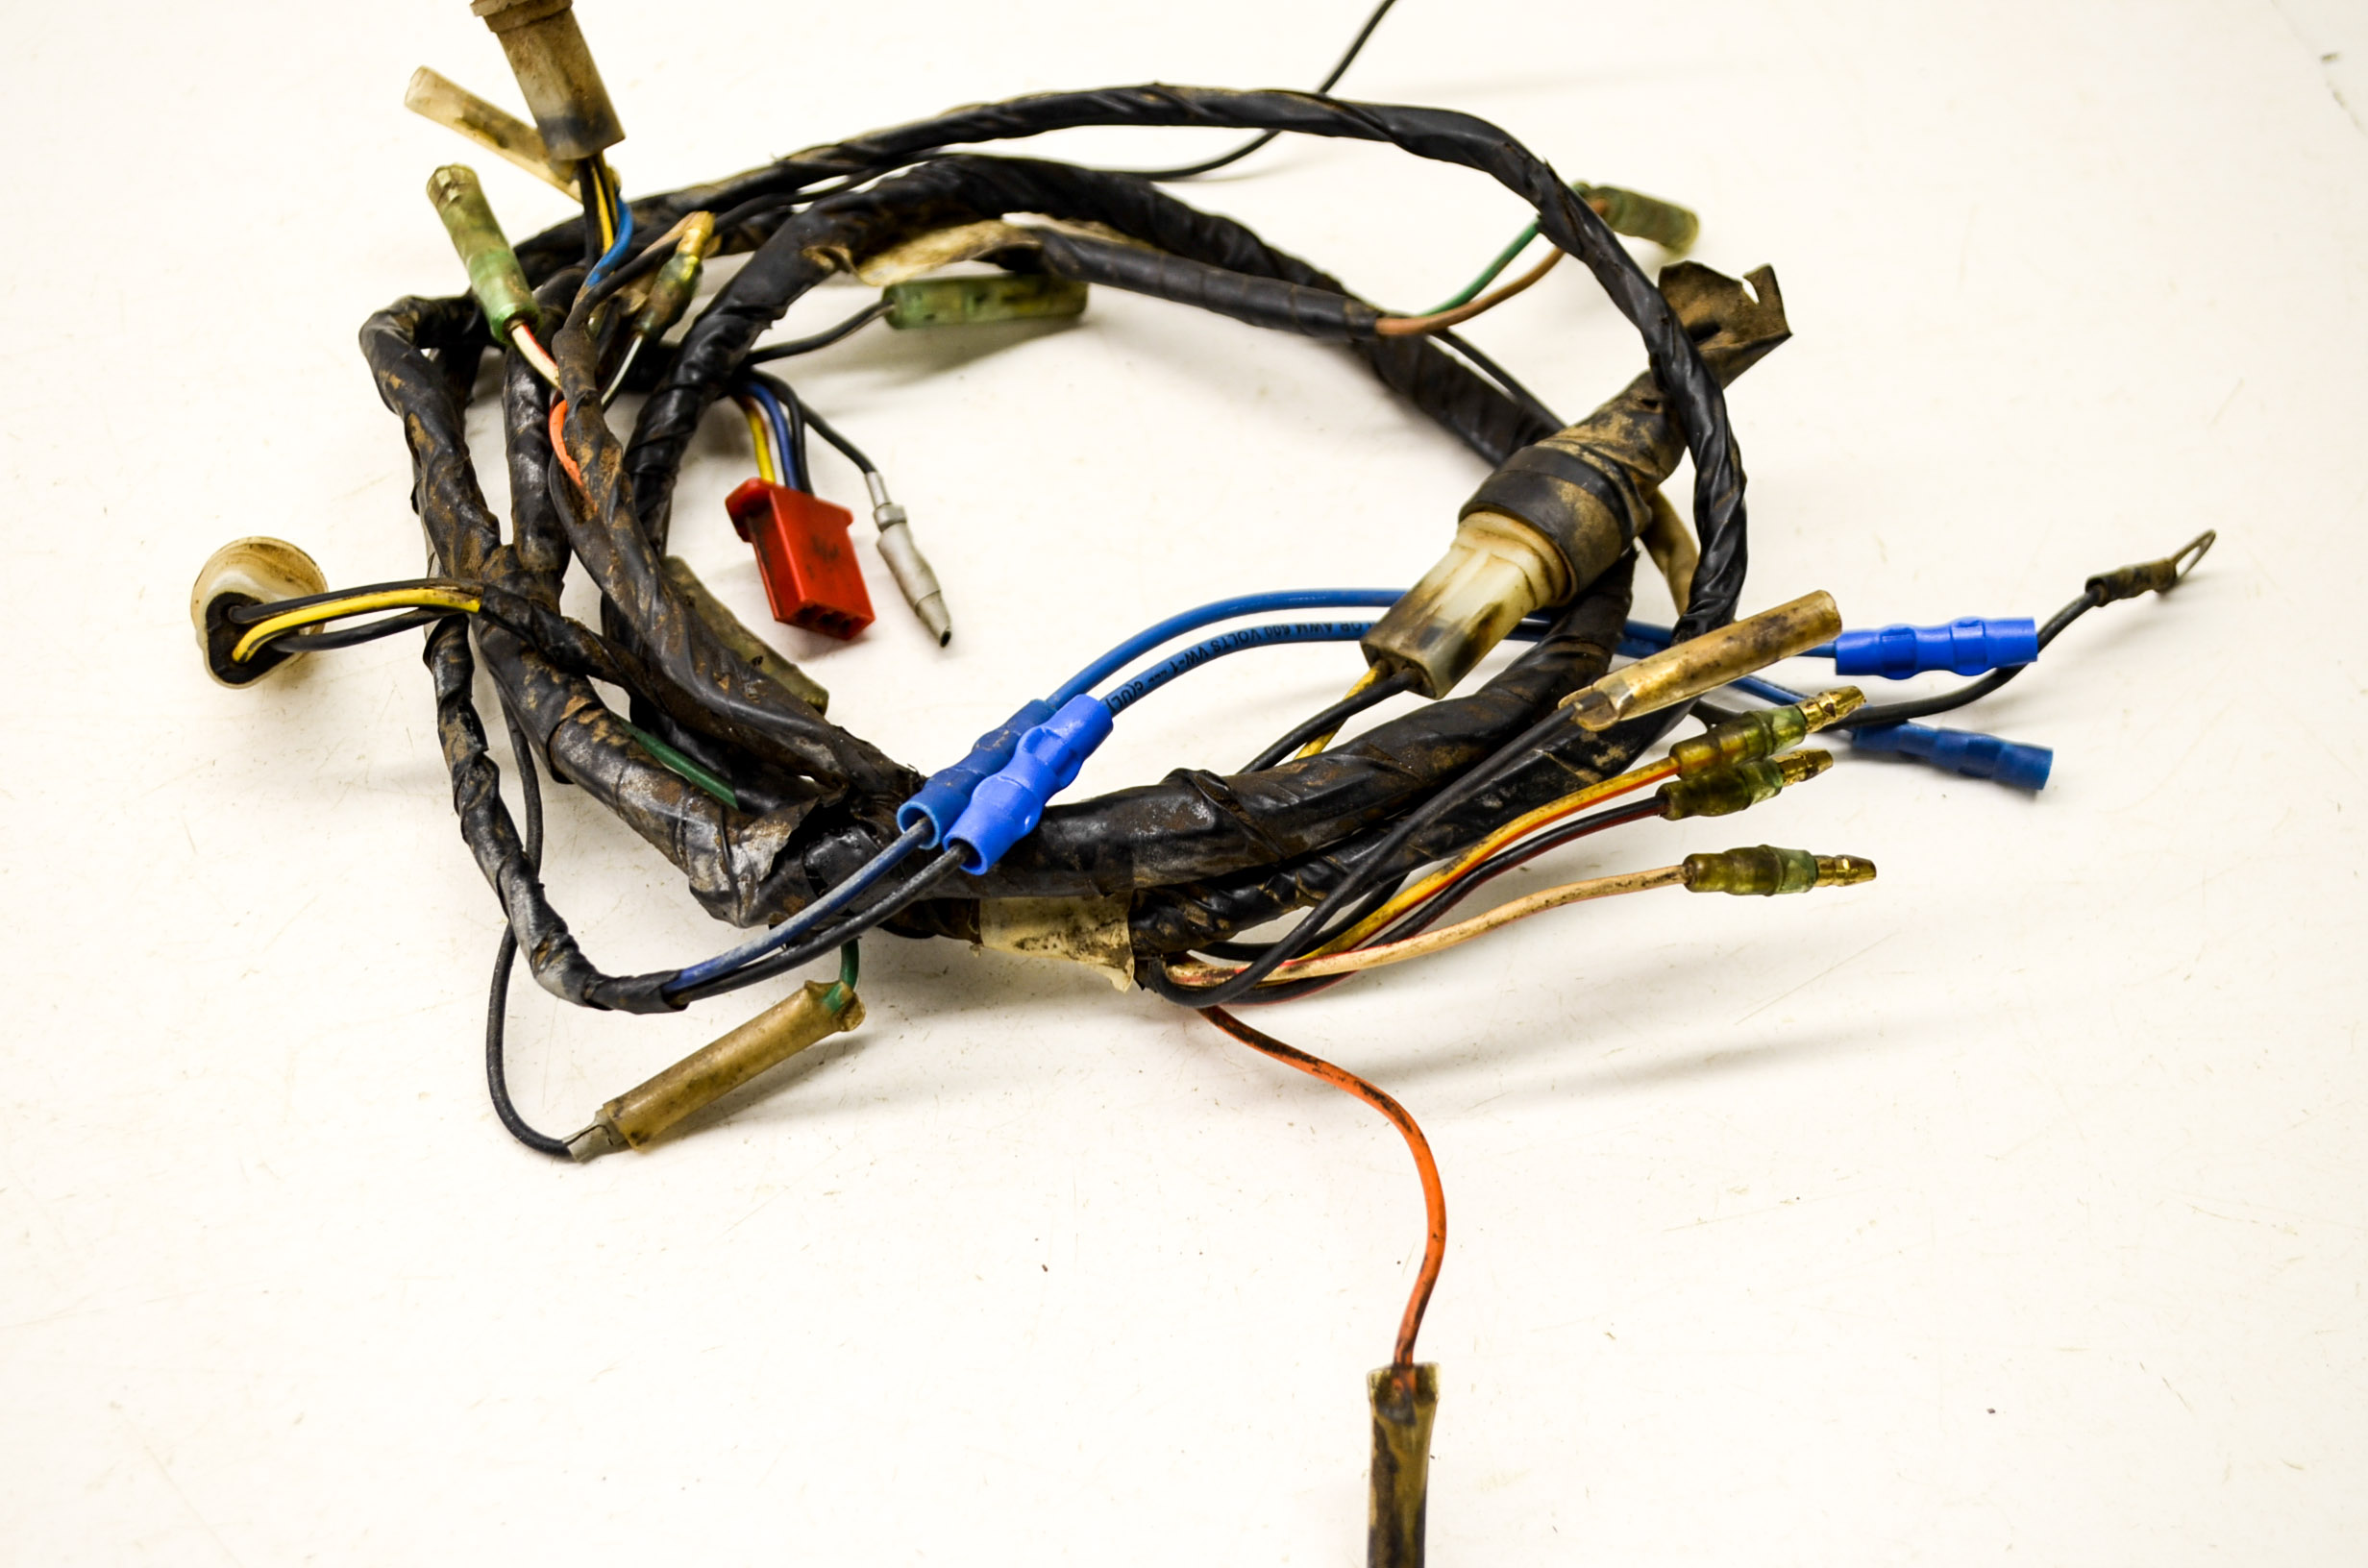 89 yamaha blaster 200 wire harness electrical wiring ... yamaha blaster wiring harness 1989 yamaha blaster wiring diagram